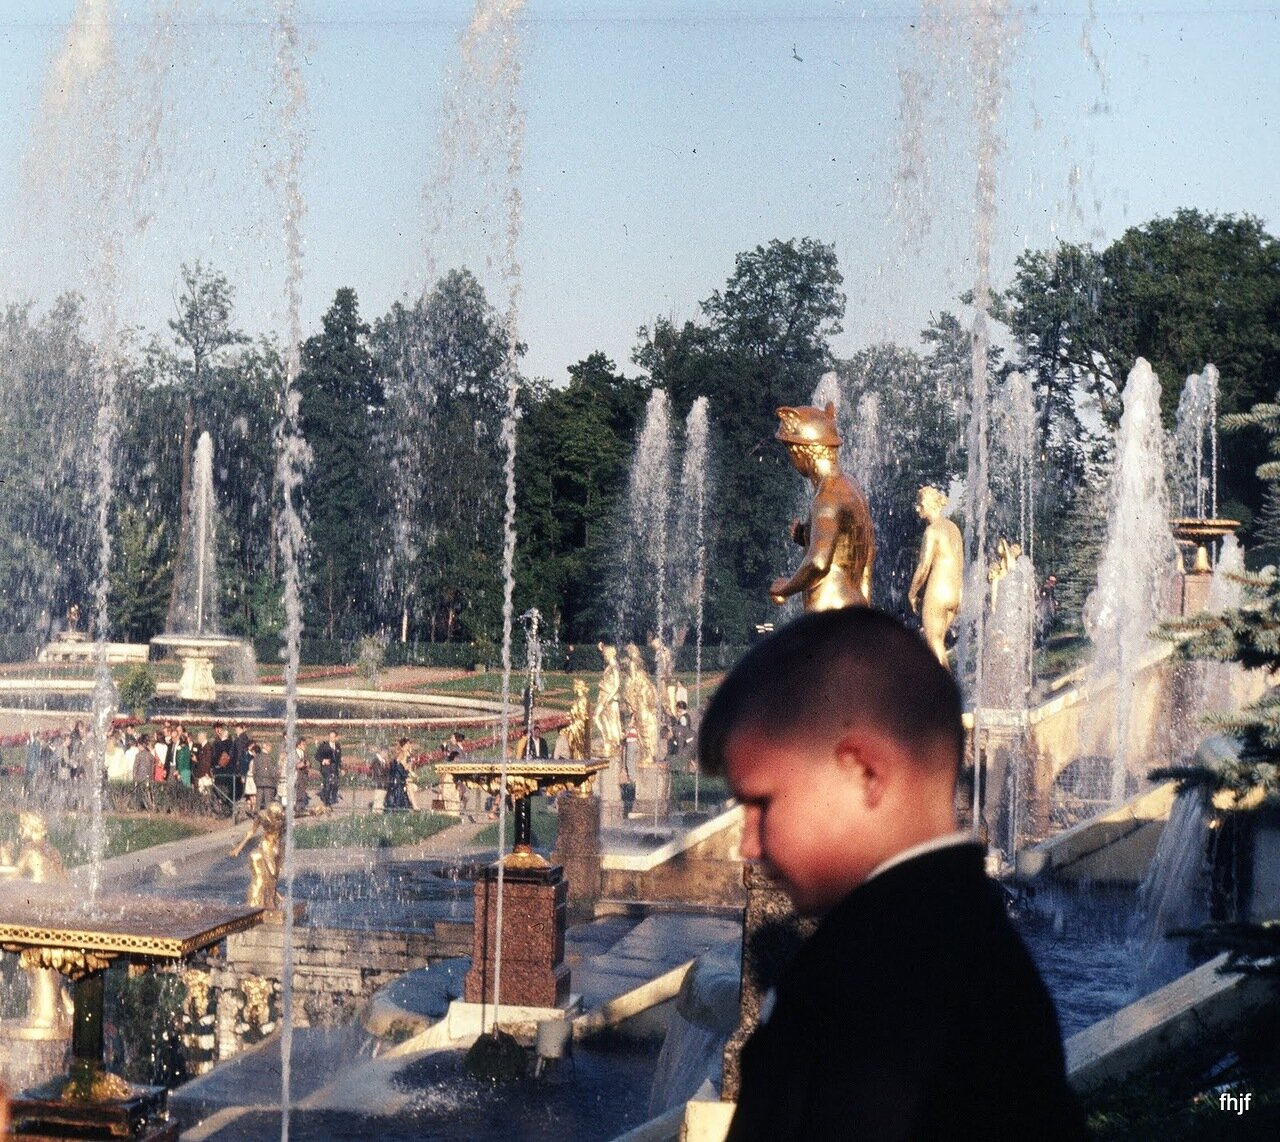 side view of fountains